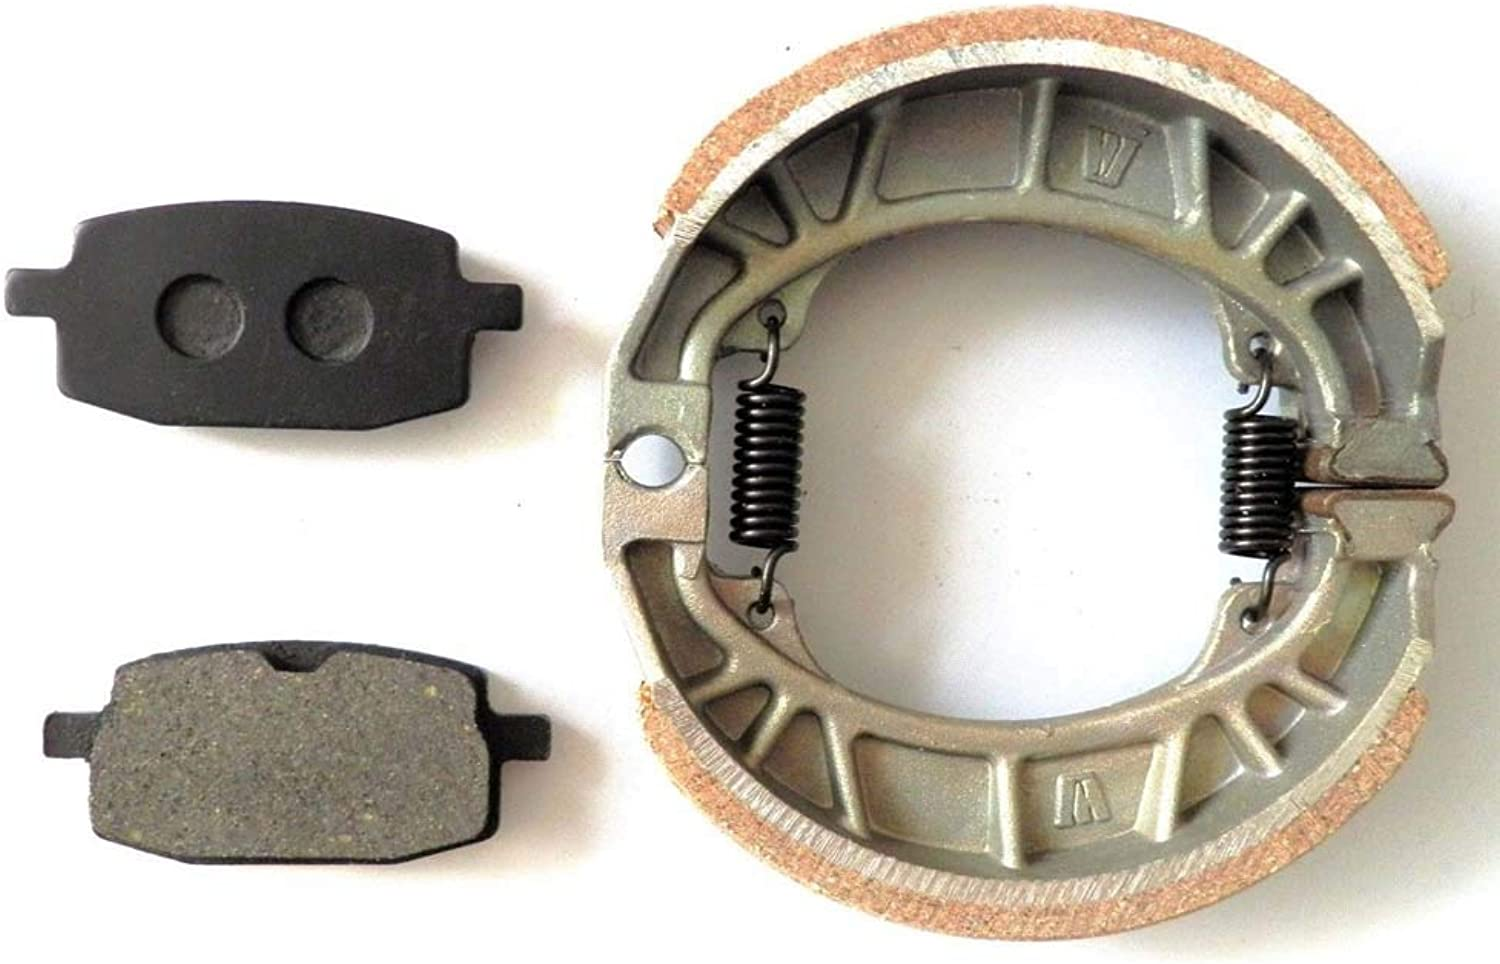 SalaCtr  Motorcycle Rear Brake Disc Pads + Drum Brake shoes Set for GY6 49CC 50CC Scooter Moped TAOTAO Parts